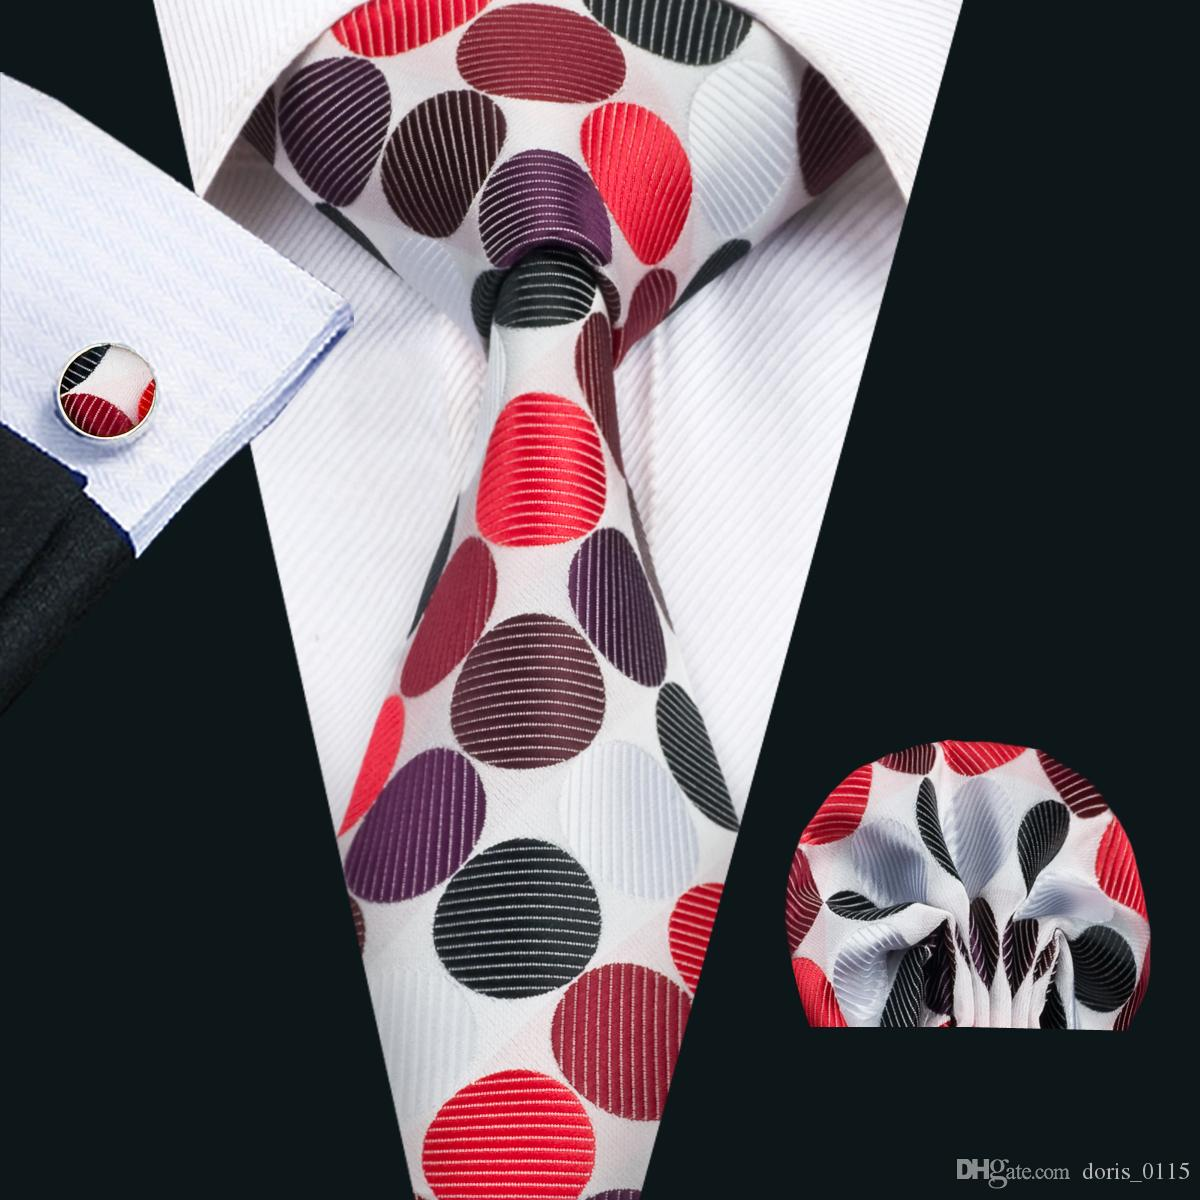 611e3cb366d3 2019 Classic Silk Men Ties Dot Tie Sets Colorful Mens Neckties Tie Hanky  Cufflinks Set Jacquard Woven Meeting Business Wedding Party Gift N 1426  From ...